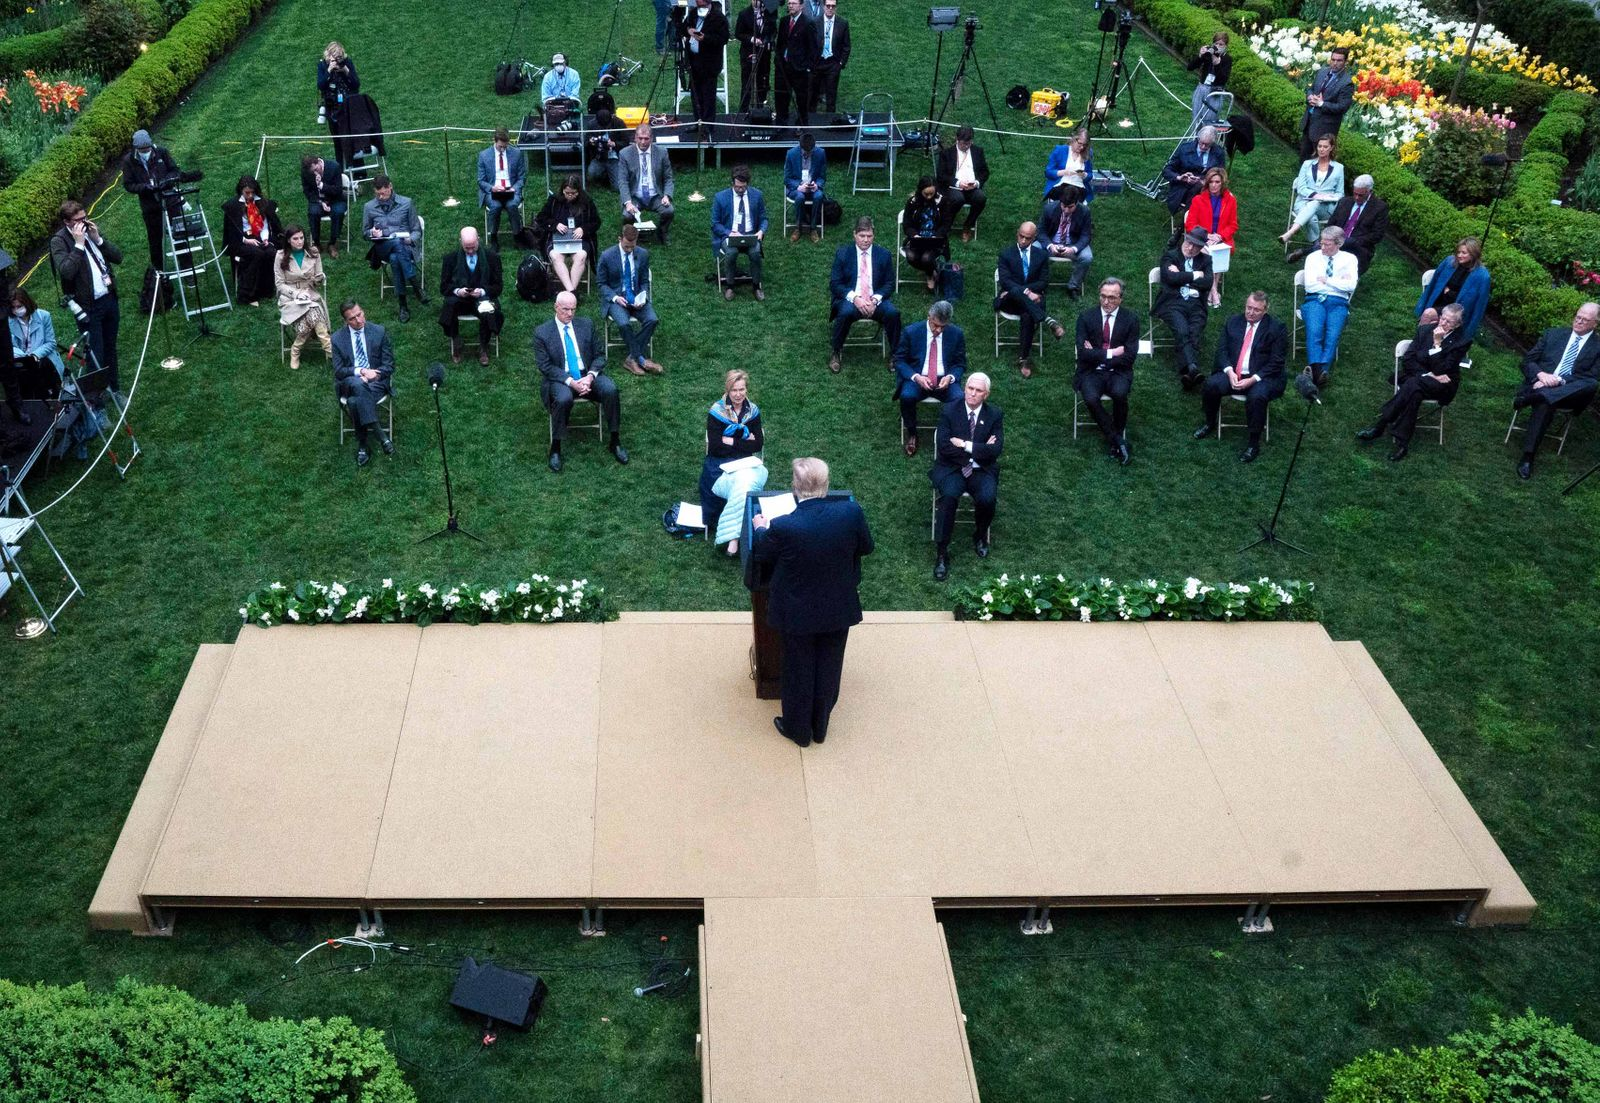 April 14, 2020, Washington, District of Columbia, USA: United States President Donald J. Trump delivers remarks during